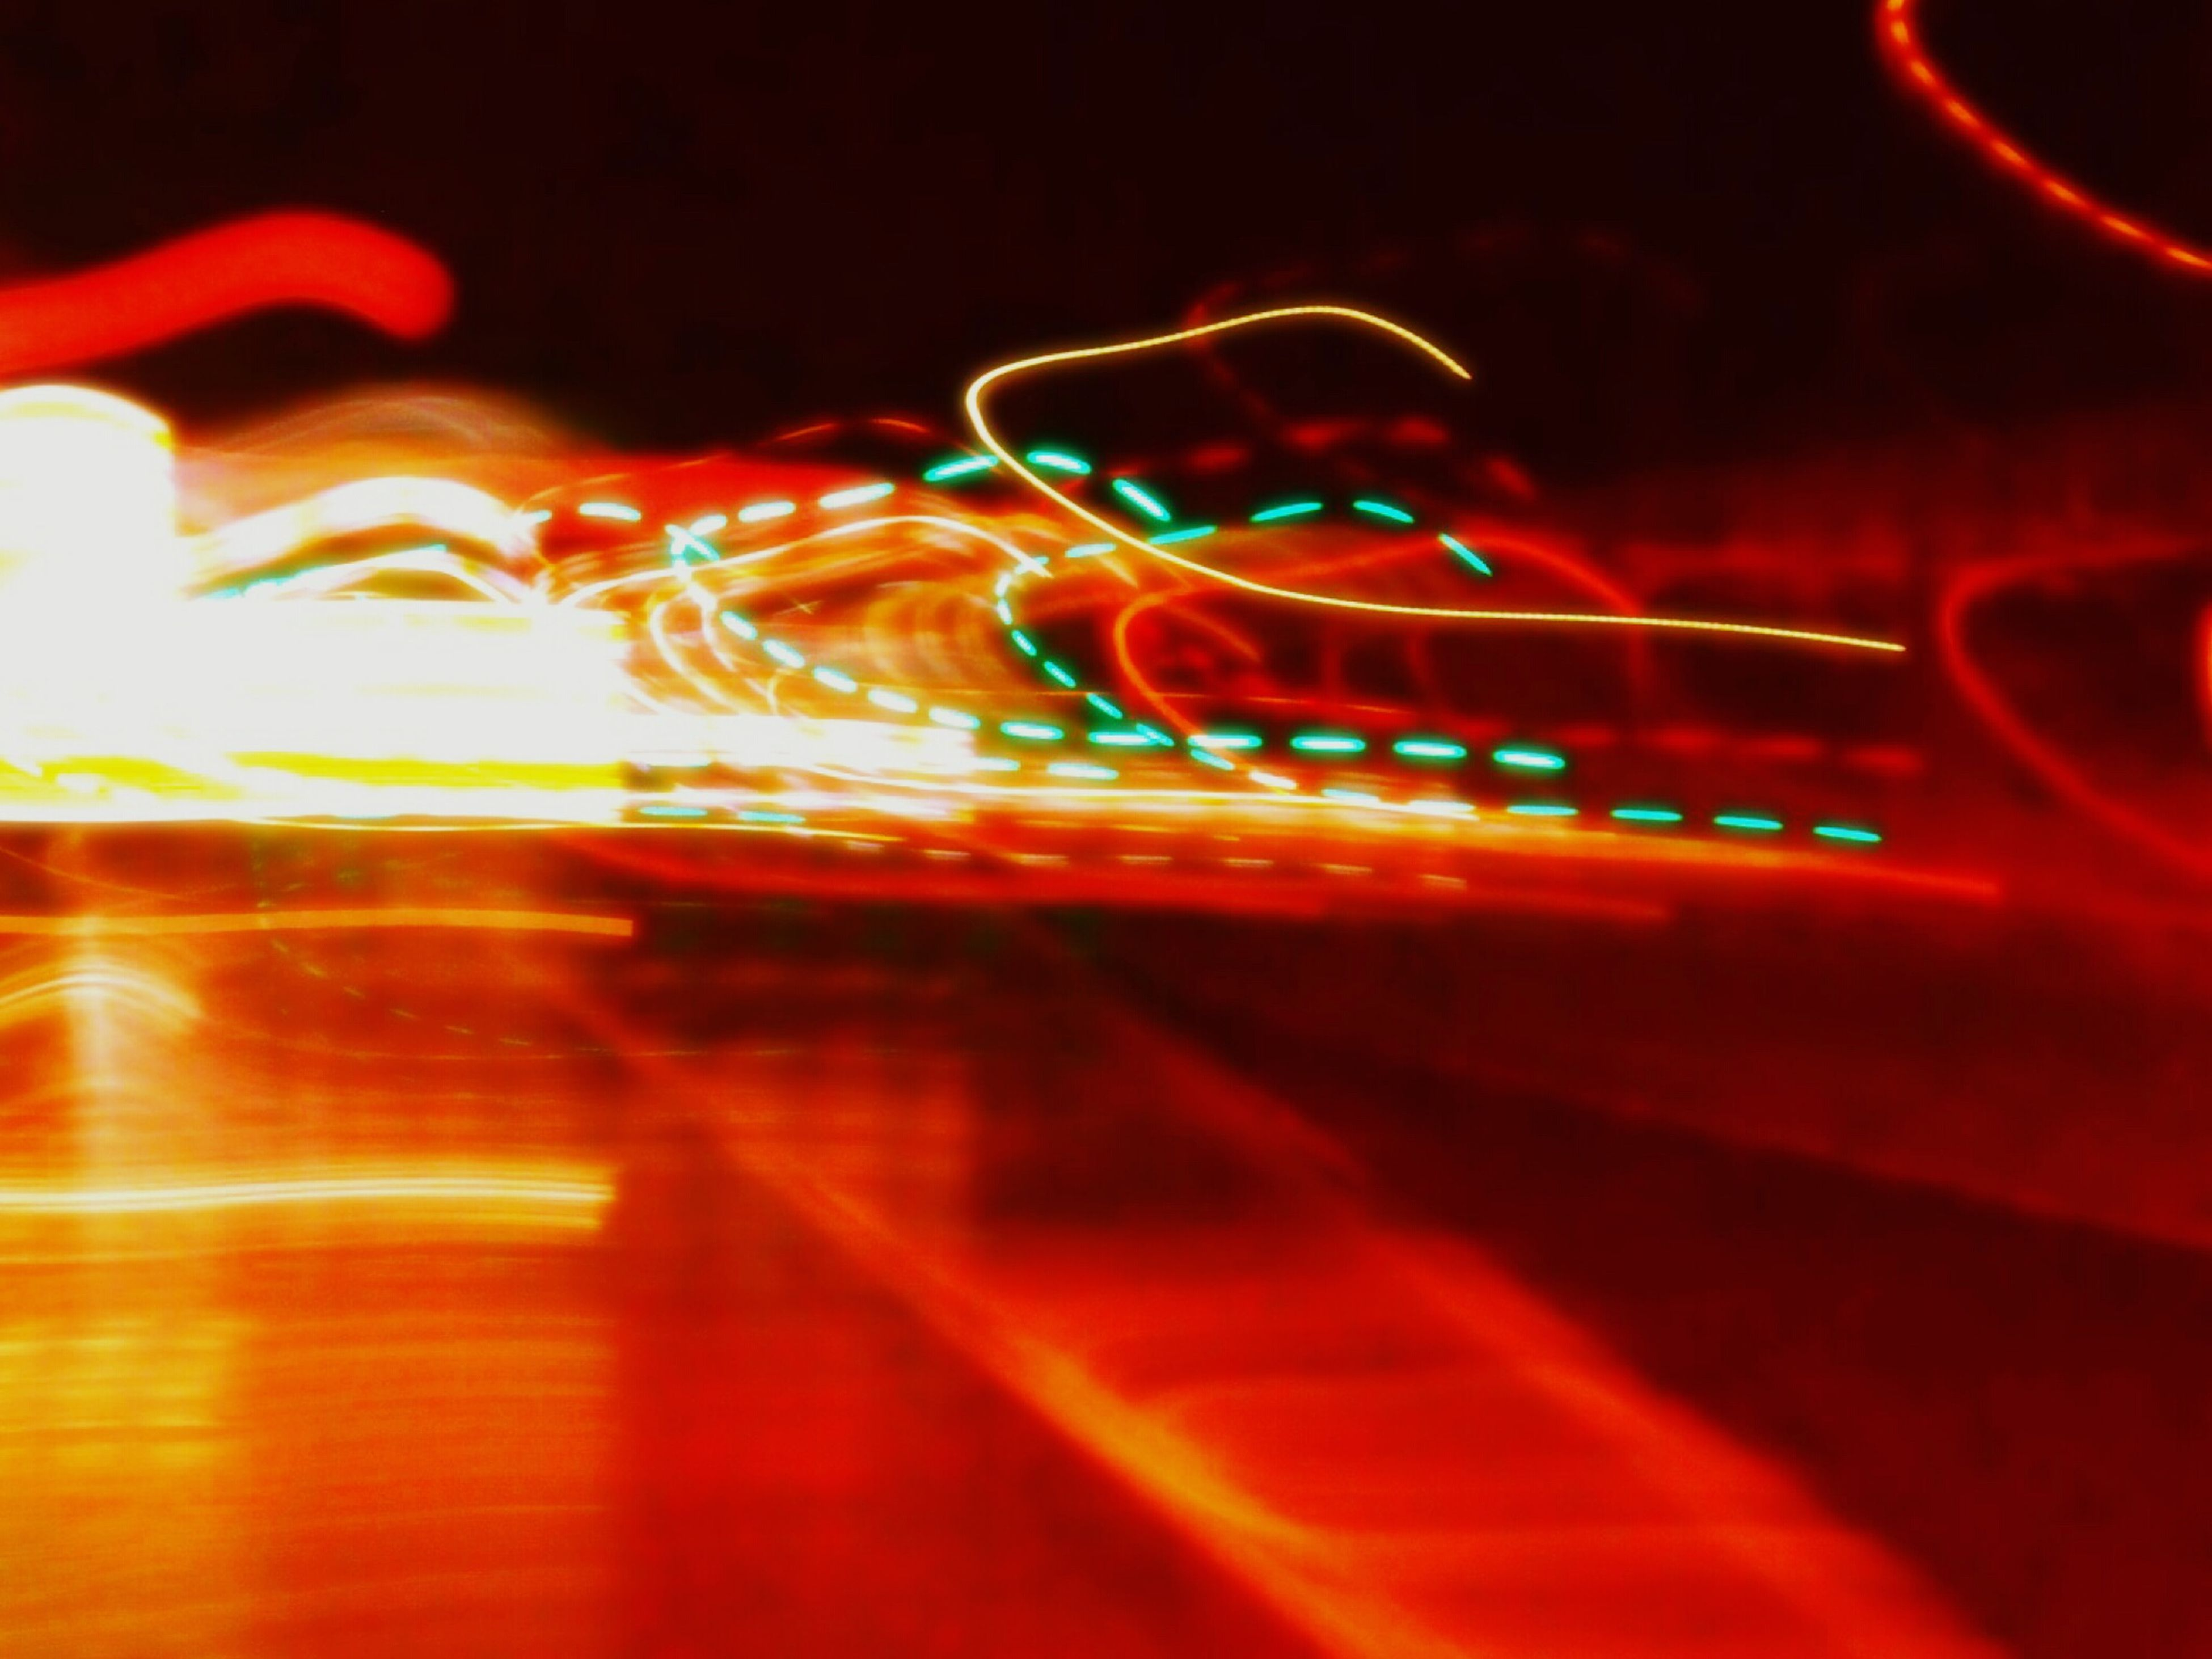 illuminated, night, motion, red, blurred motion, long exposure, speed, multi colored, light - natural phenomenon, light trail, glowing, arts culture and entertainment, abstract, lens flare, close-up, street, defocused, pink color, reflection, outdoors